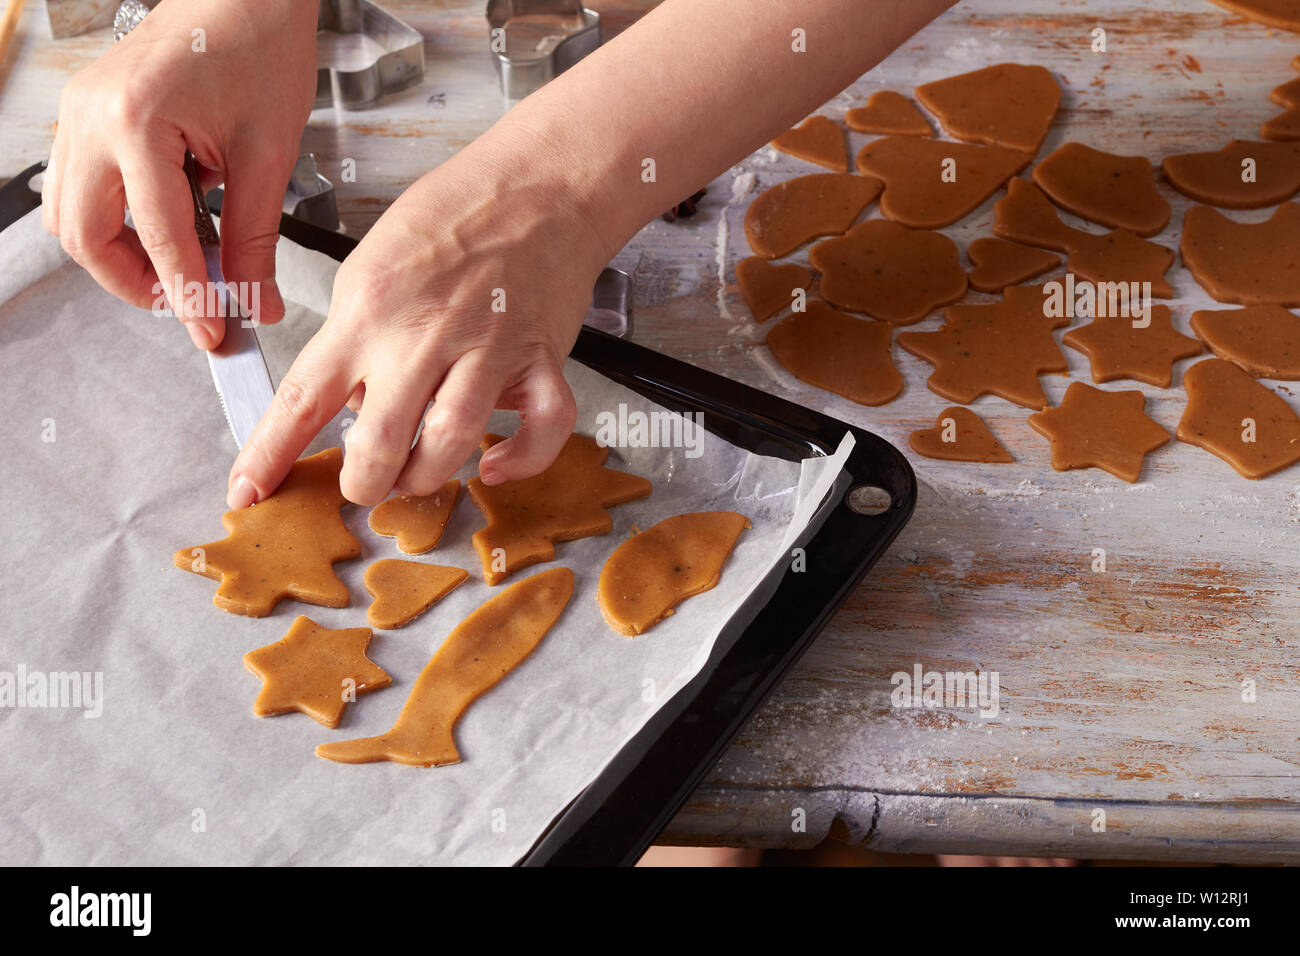 Woman's hands place raw ginger cookies on baking tray - Stock Image